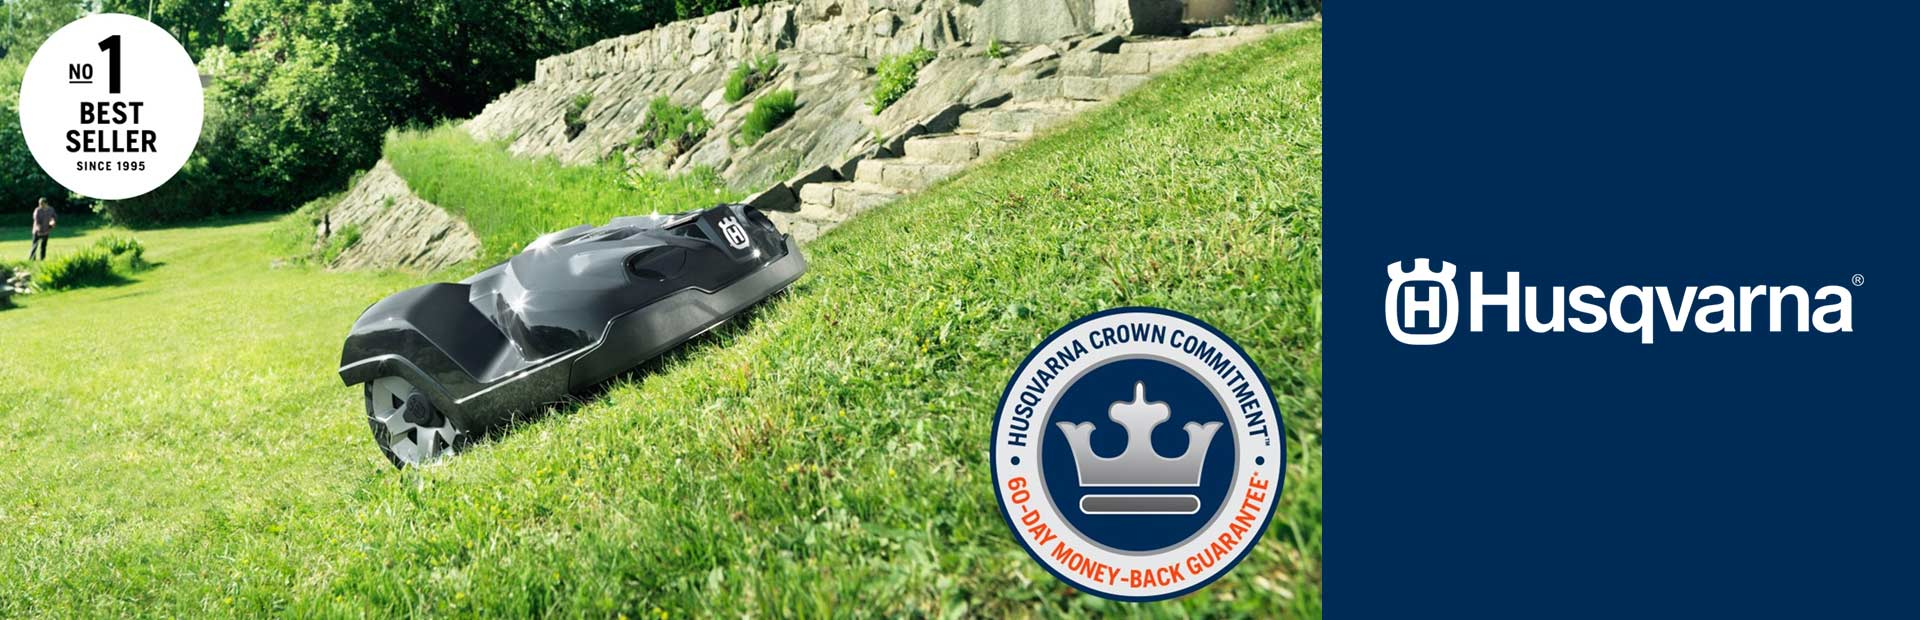 Husqvarna: Husqvarna Automower® Crown Commitment™ Program